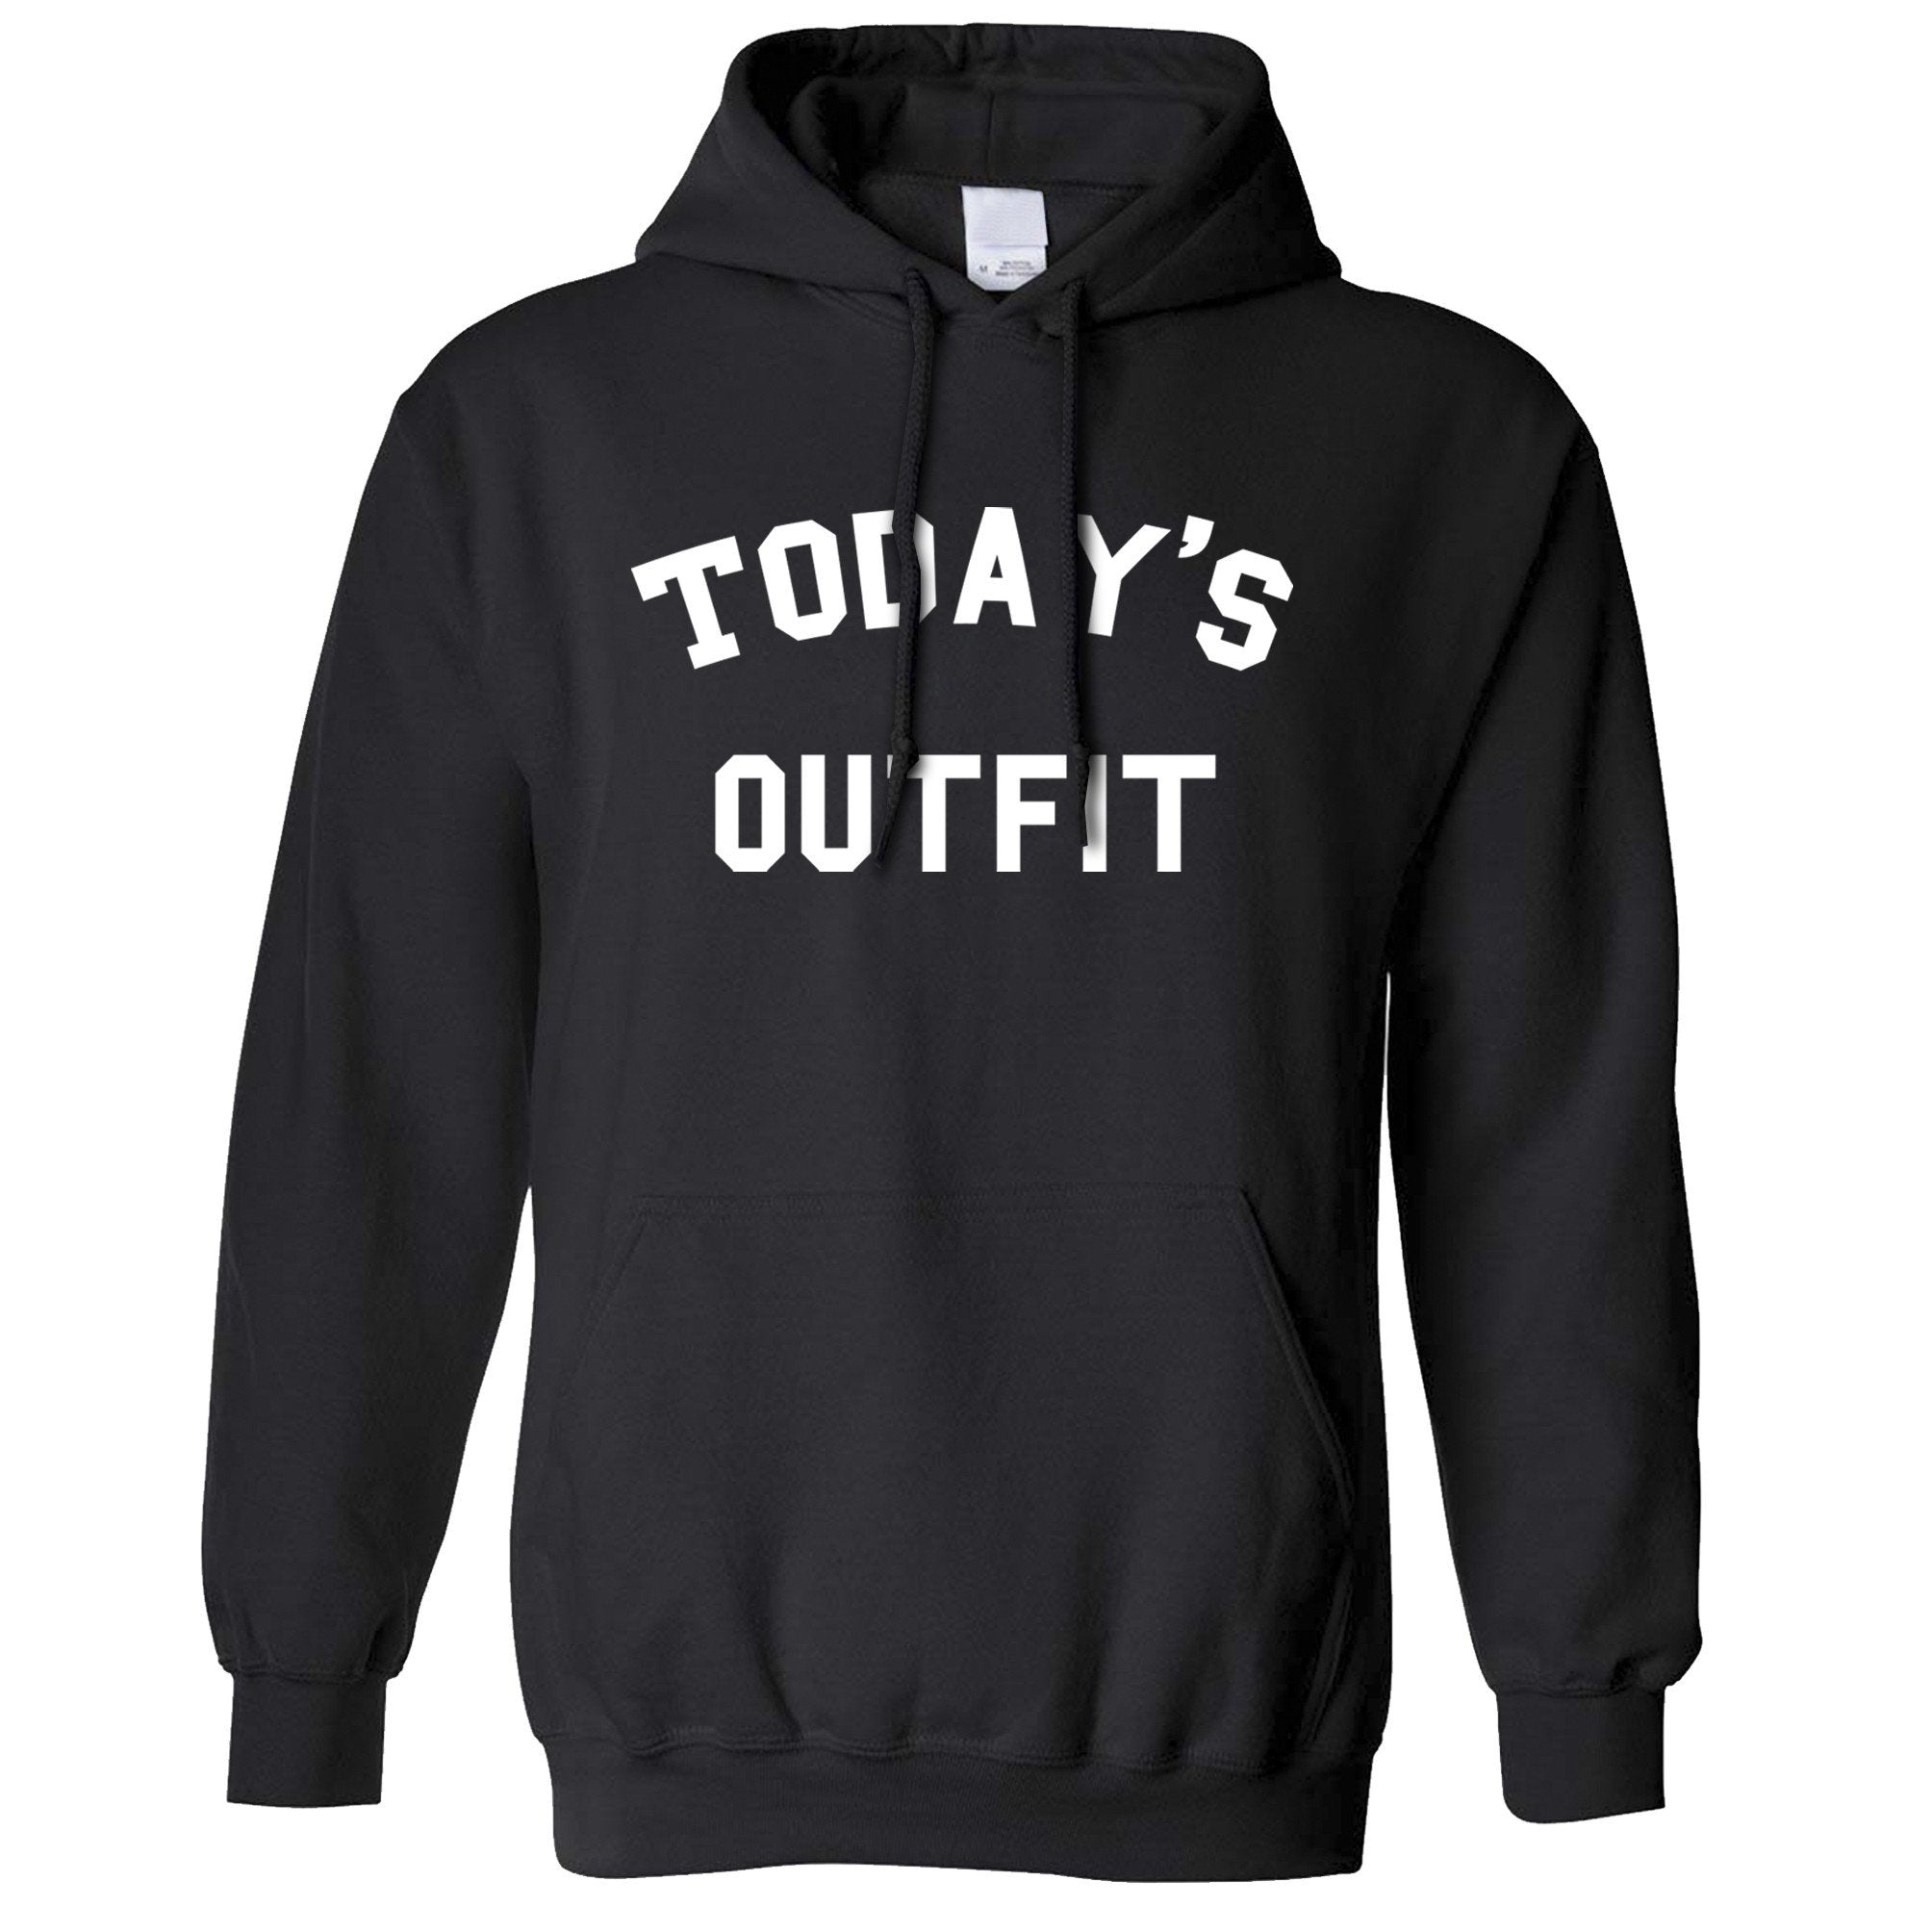 Novelty Slogan Hoodie This Is Today's Outfit Hooded Jumper